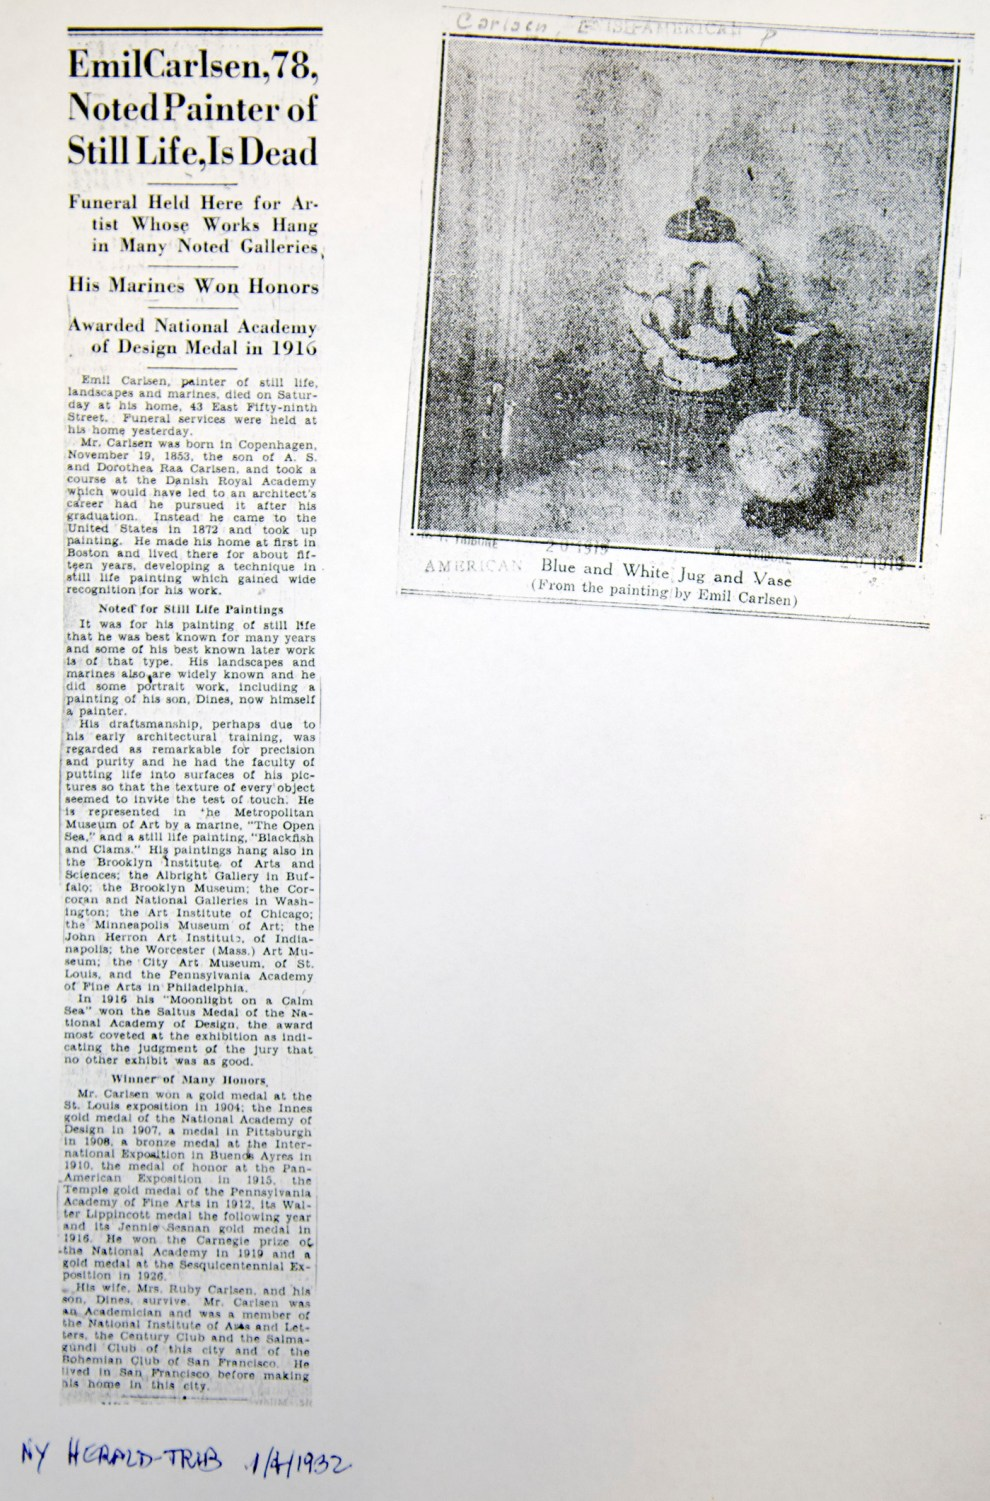 "New York Tribune, New York, NY, ""Emil Carlsen, 78, Noted Painter of Still Life, Is Dead"", January 2, 1932"